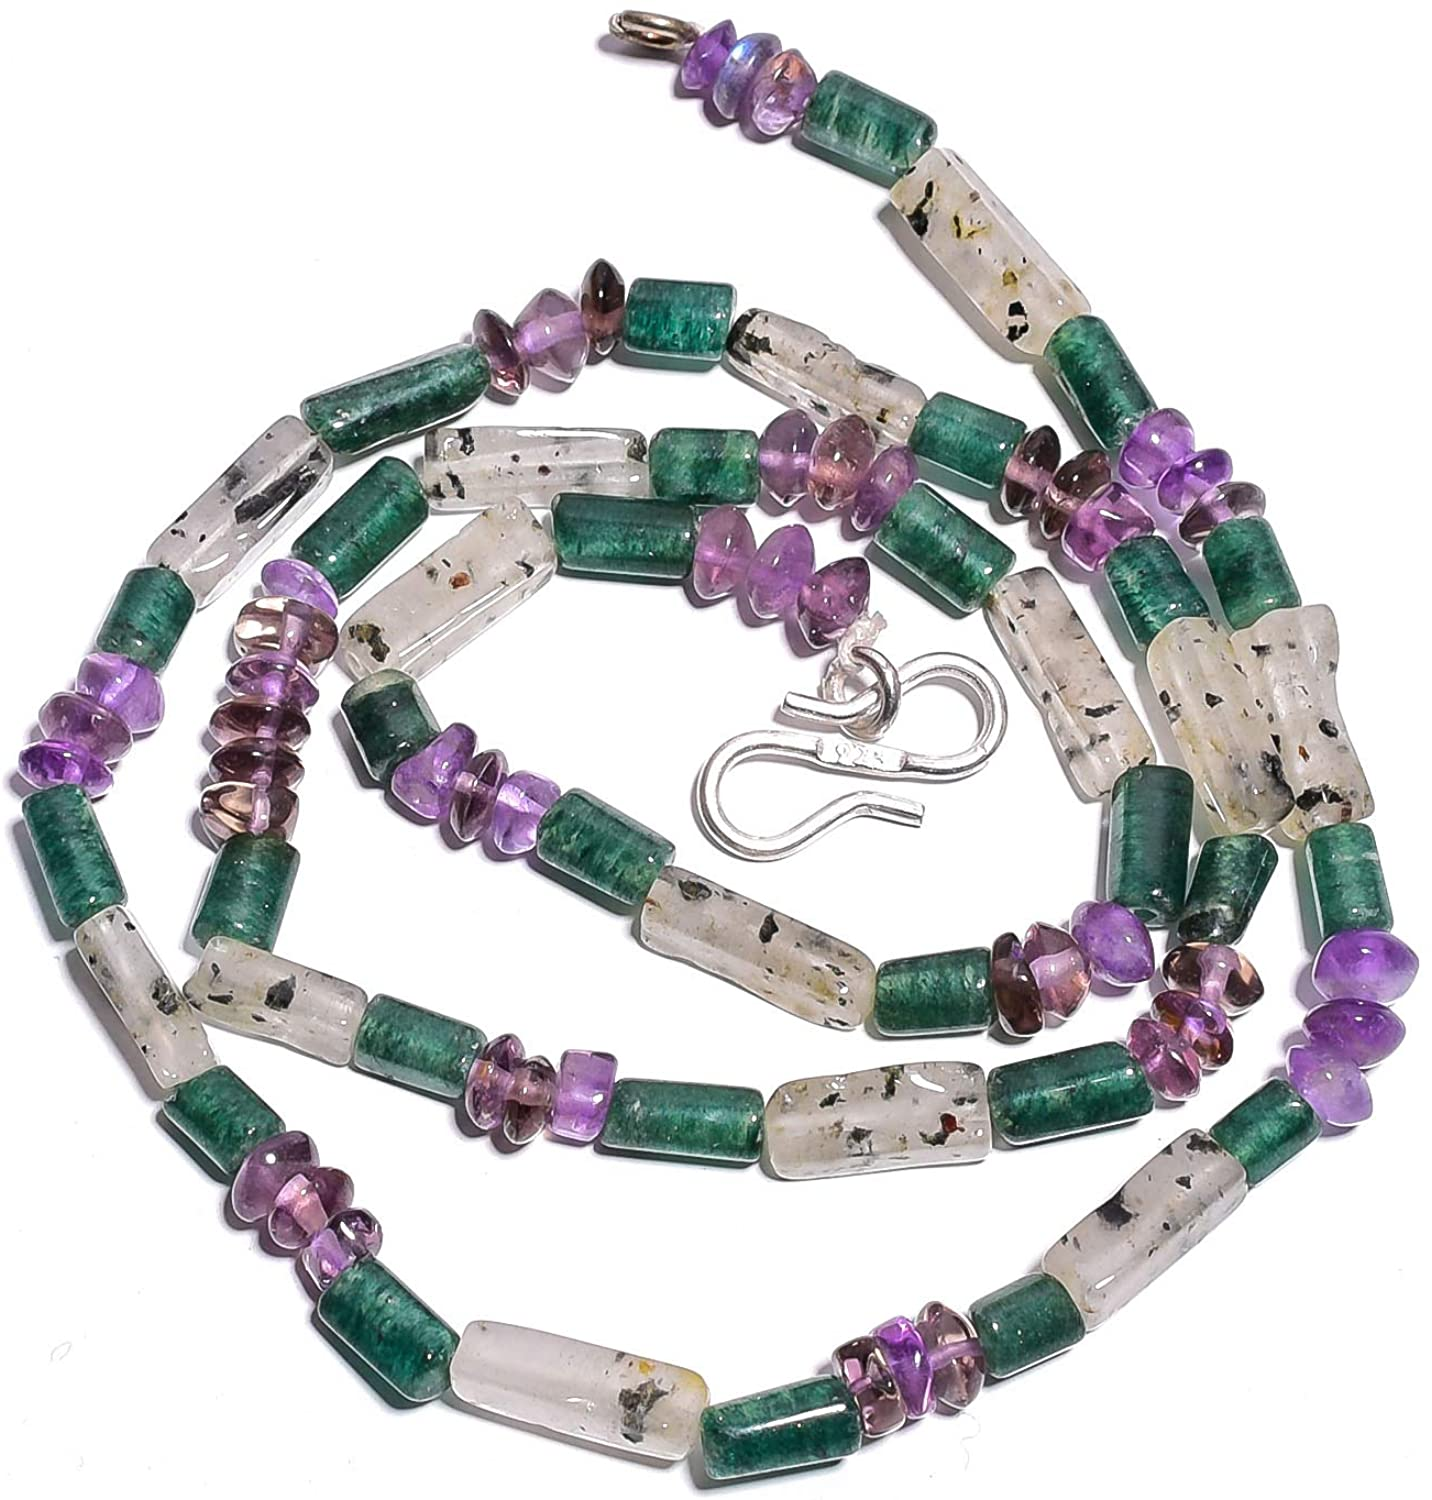 Unique Beads Green Aventurine Amethyst Rutile Quartz Gemstone Beads Necklace 18